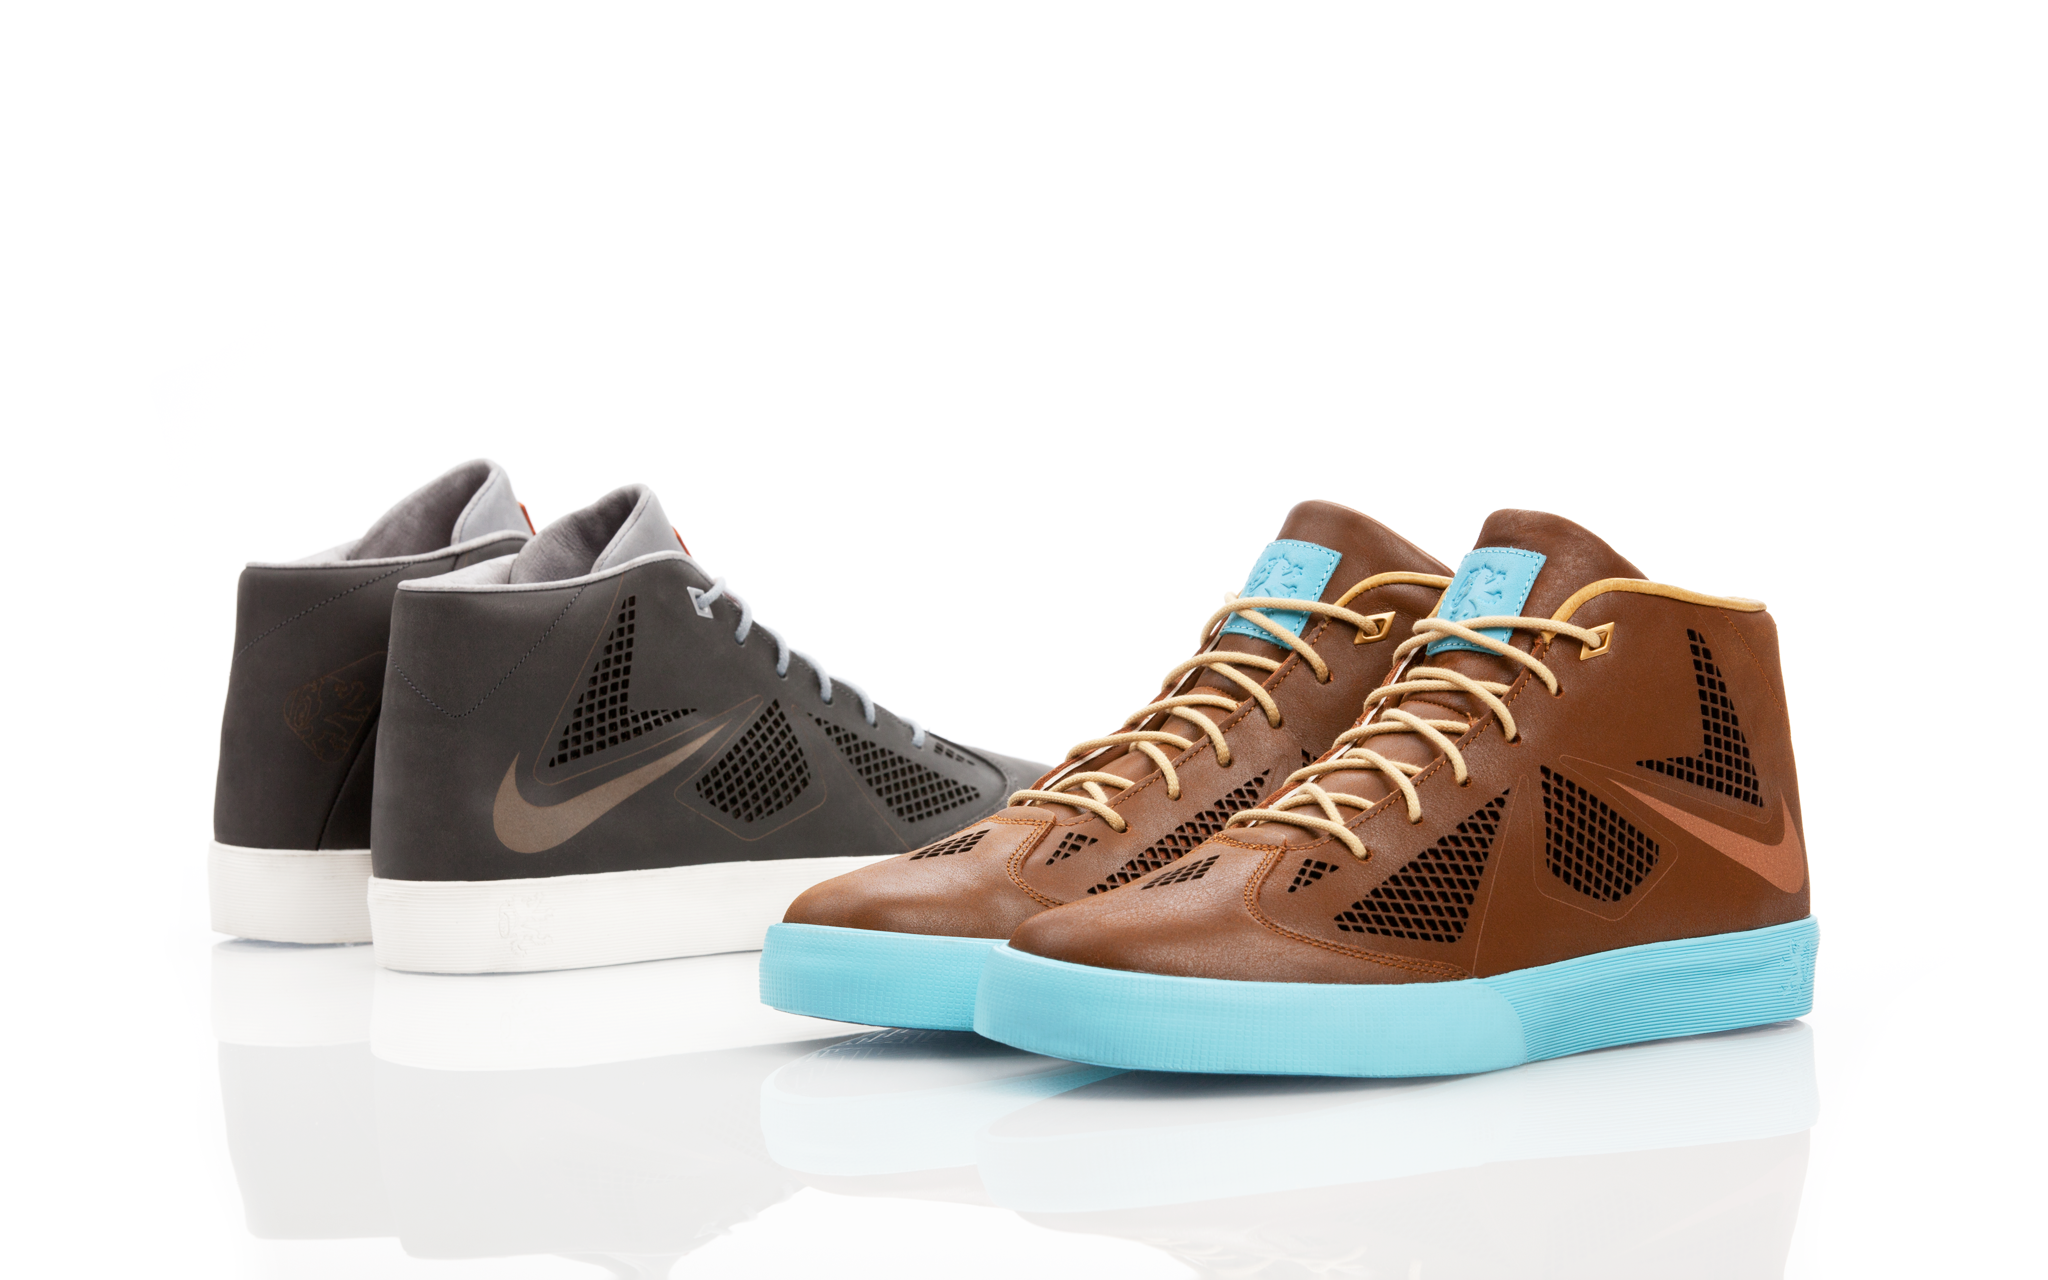 The Nike LeBron X NSW Lifestyle. Available in two colorways on 6.15: http://t.co/Y3A1hMAgD7